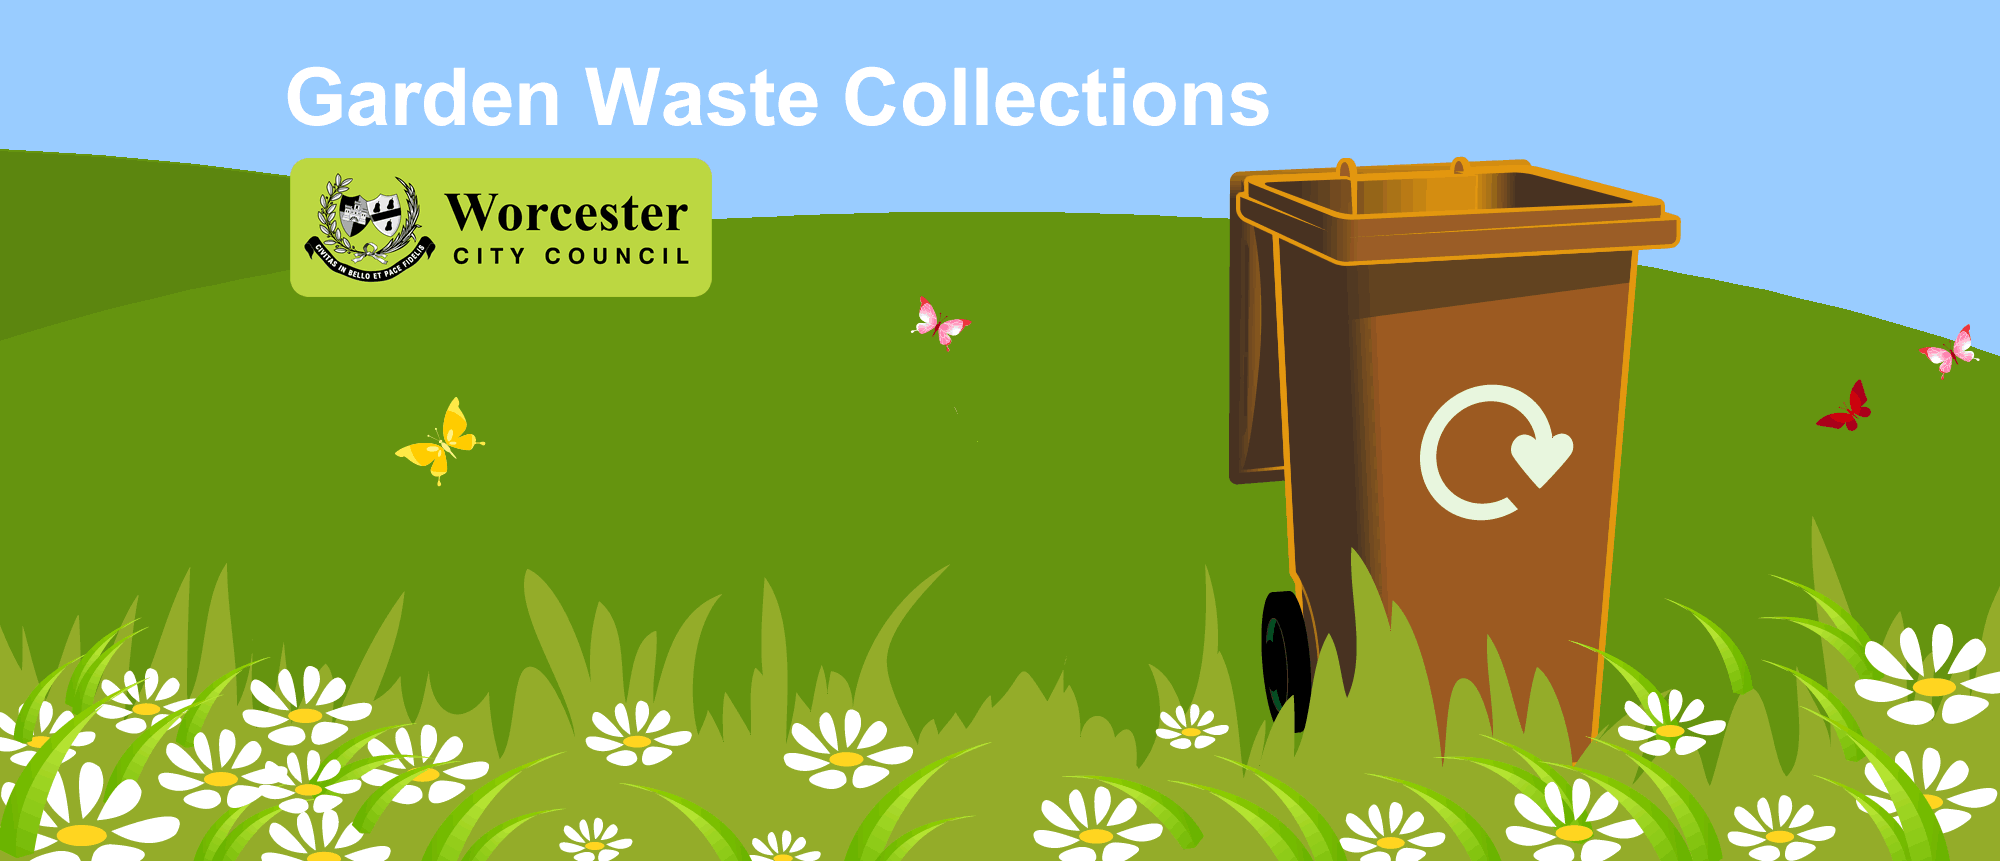 Garden Waste Collections Graphic